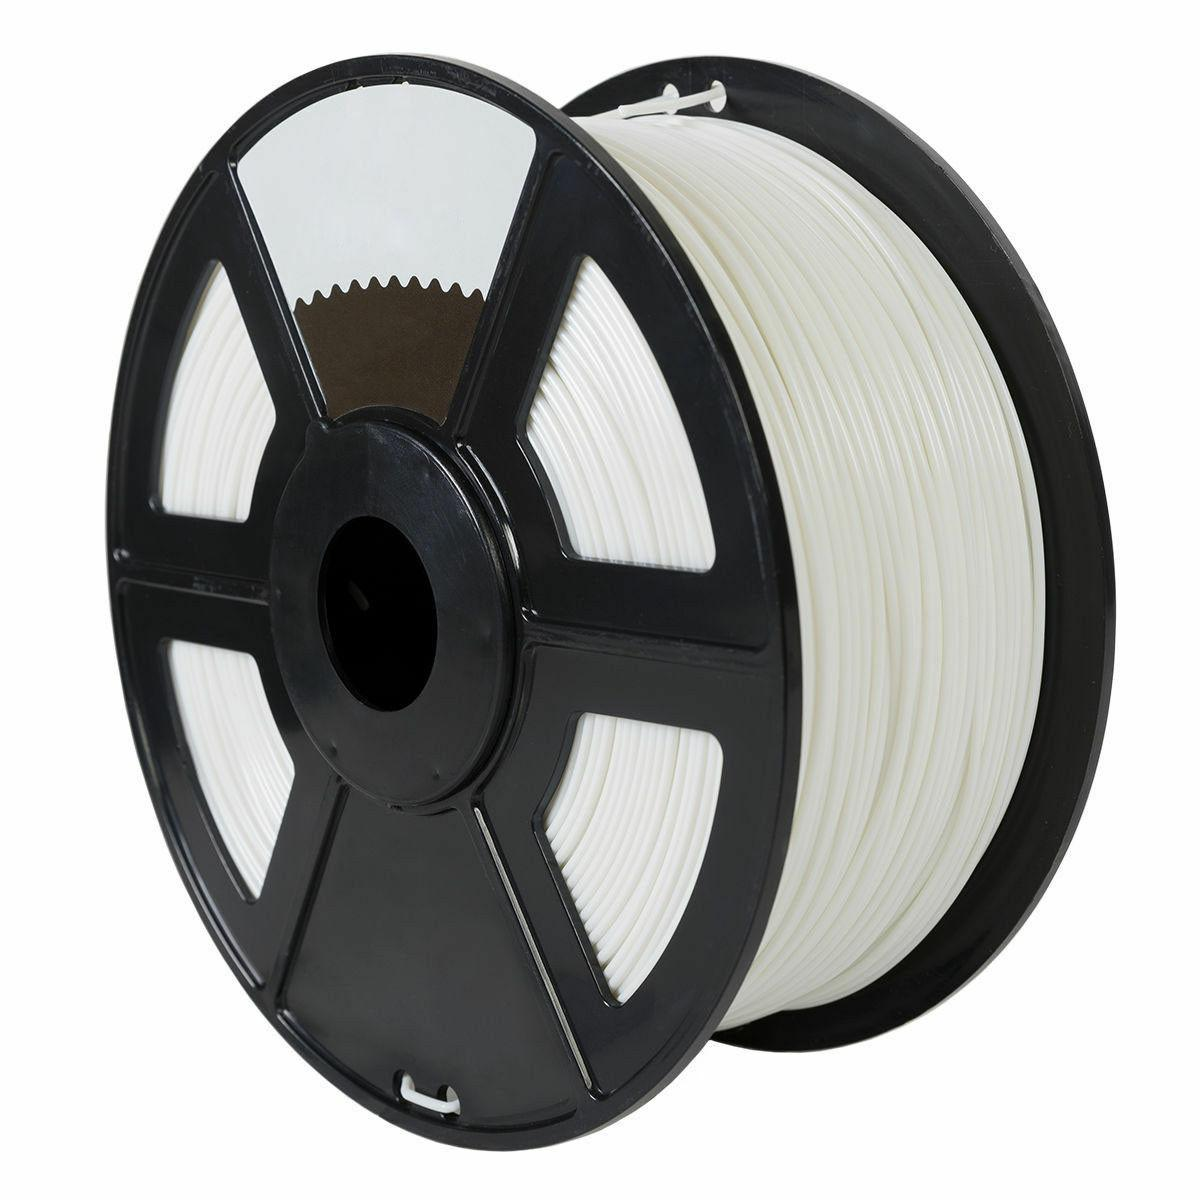 3D Printer Filament 1kg/2.2lb 1.75mm 3mm ABS PLA PETG Wood T